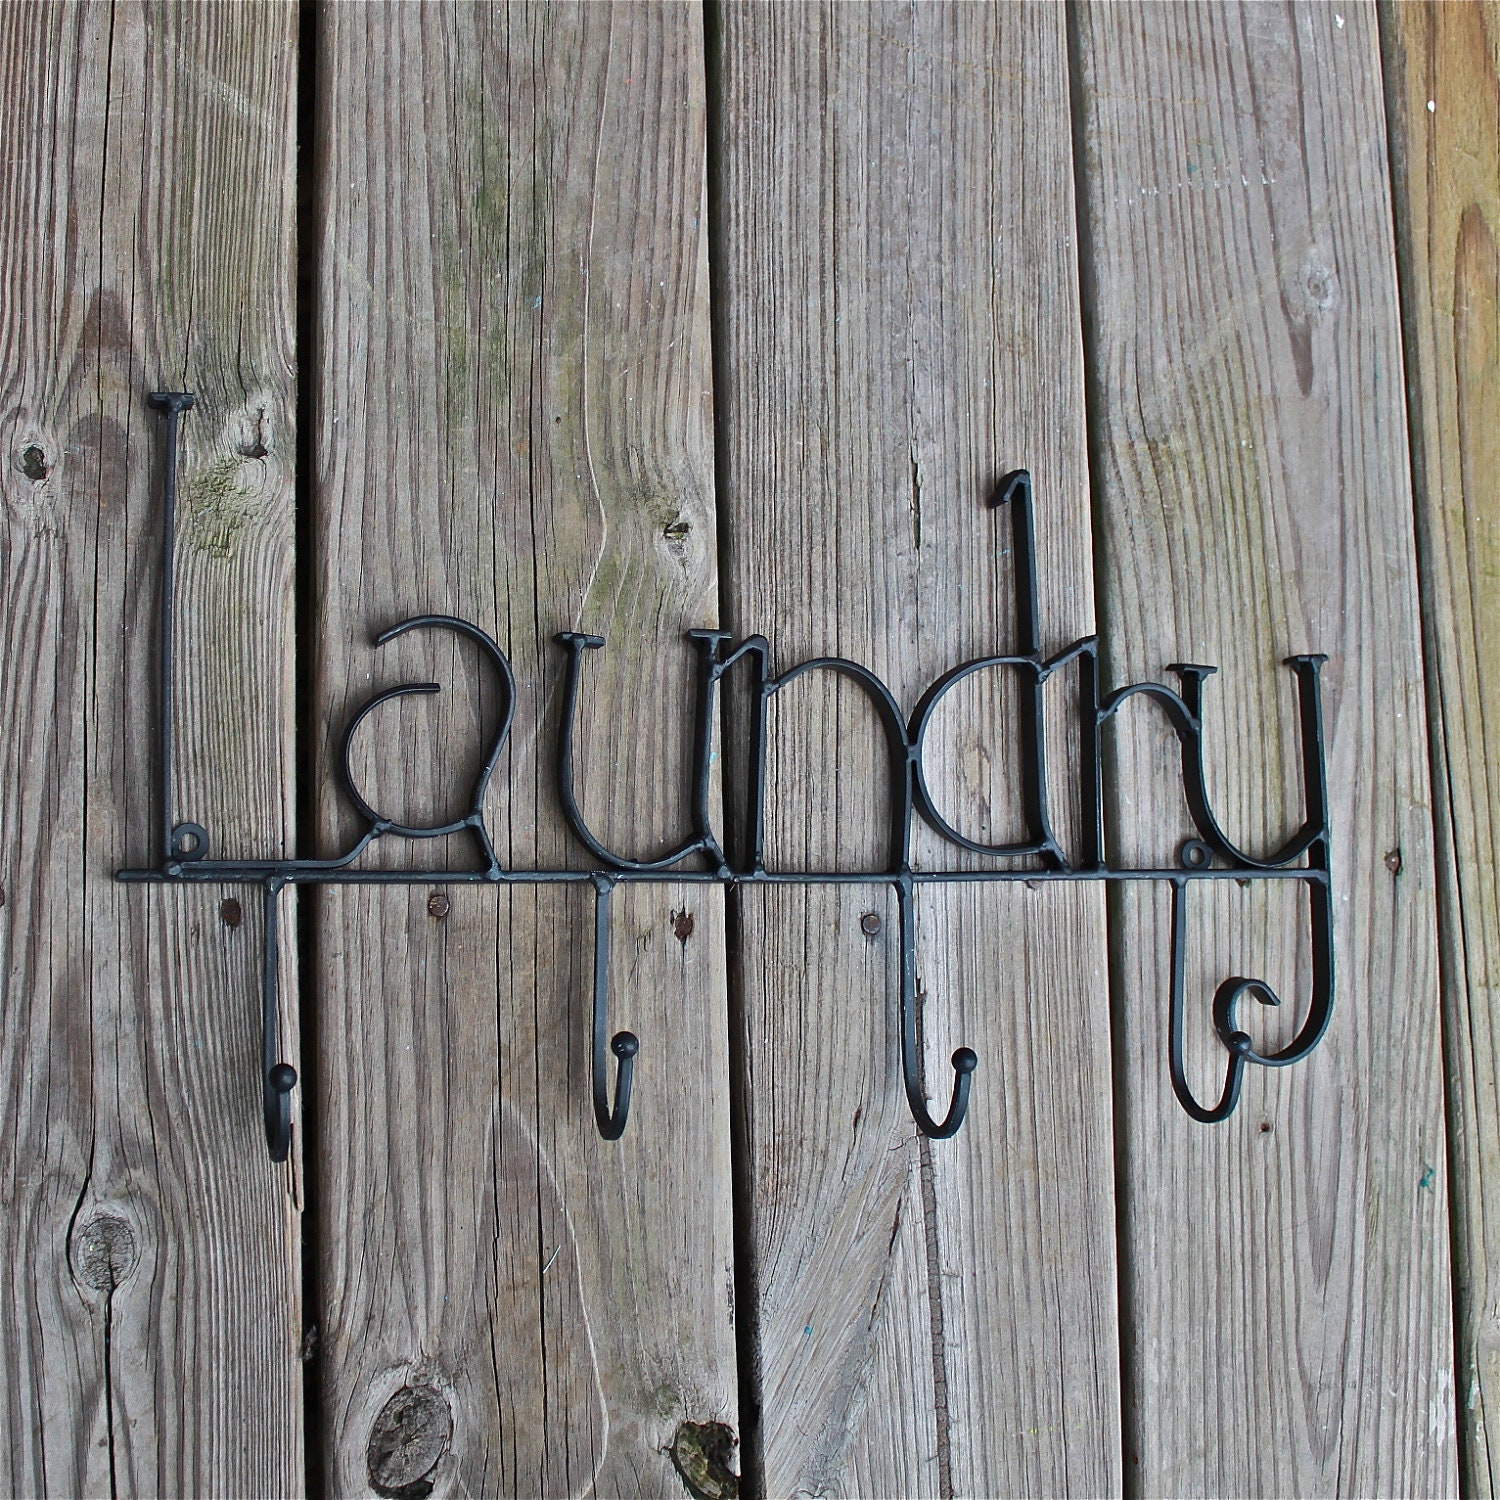 LAUNDRY Metal Wall Hook/ Black/ Laundry Room Bag by AquaXpressions